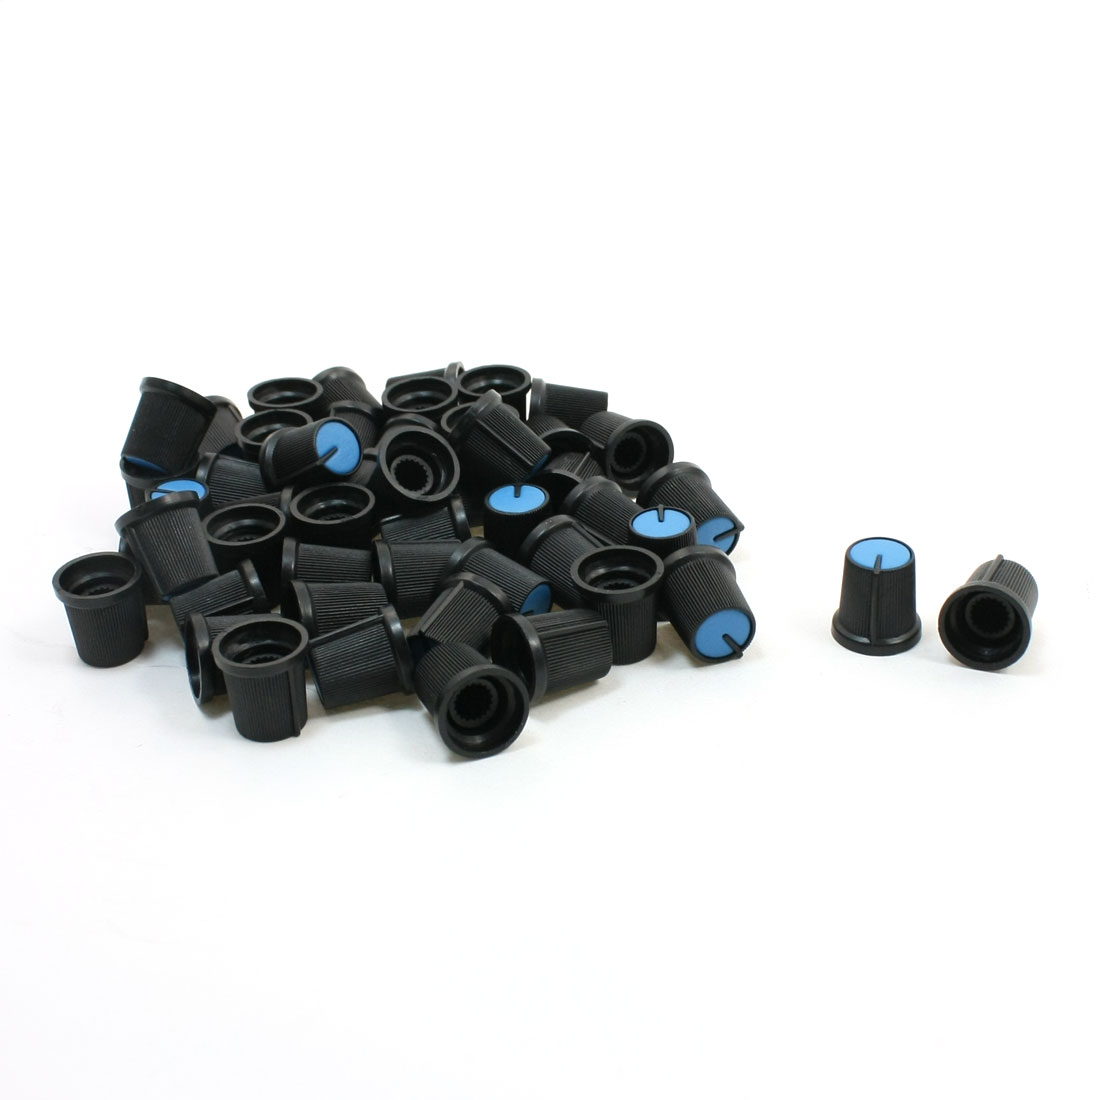 "50 Pcs 6mm 15/64"" Shaft Dia. Nonslip Potentiometer Knobs Blue Black"